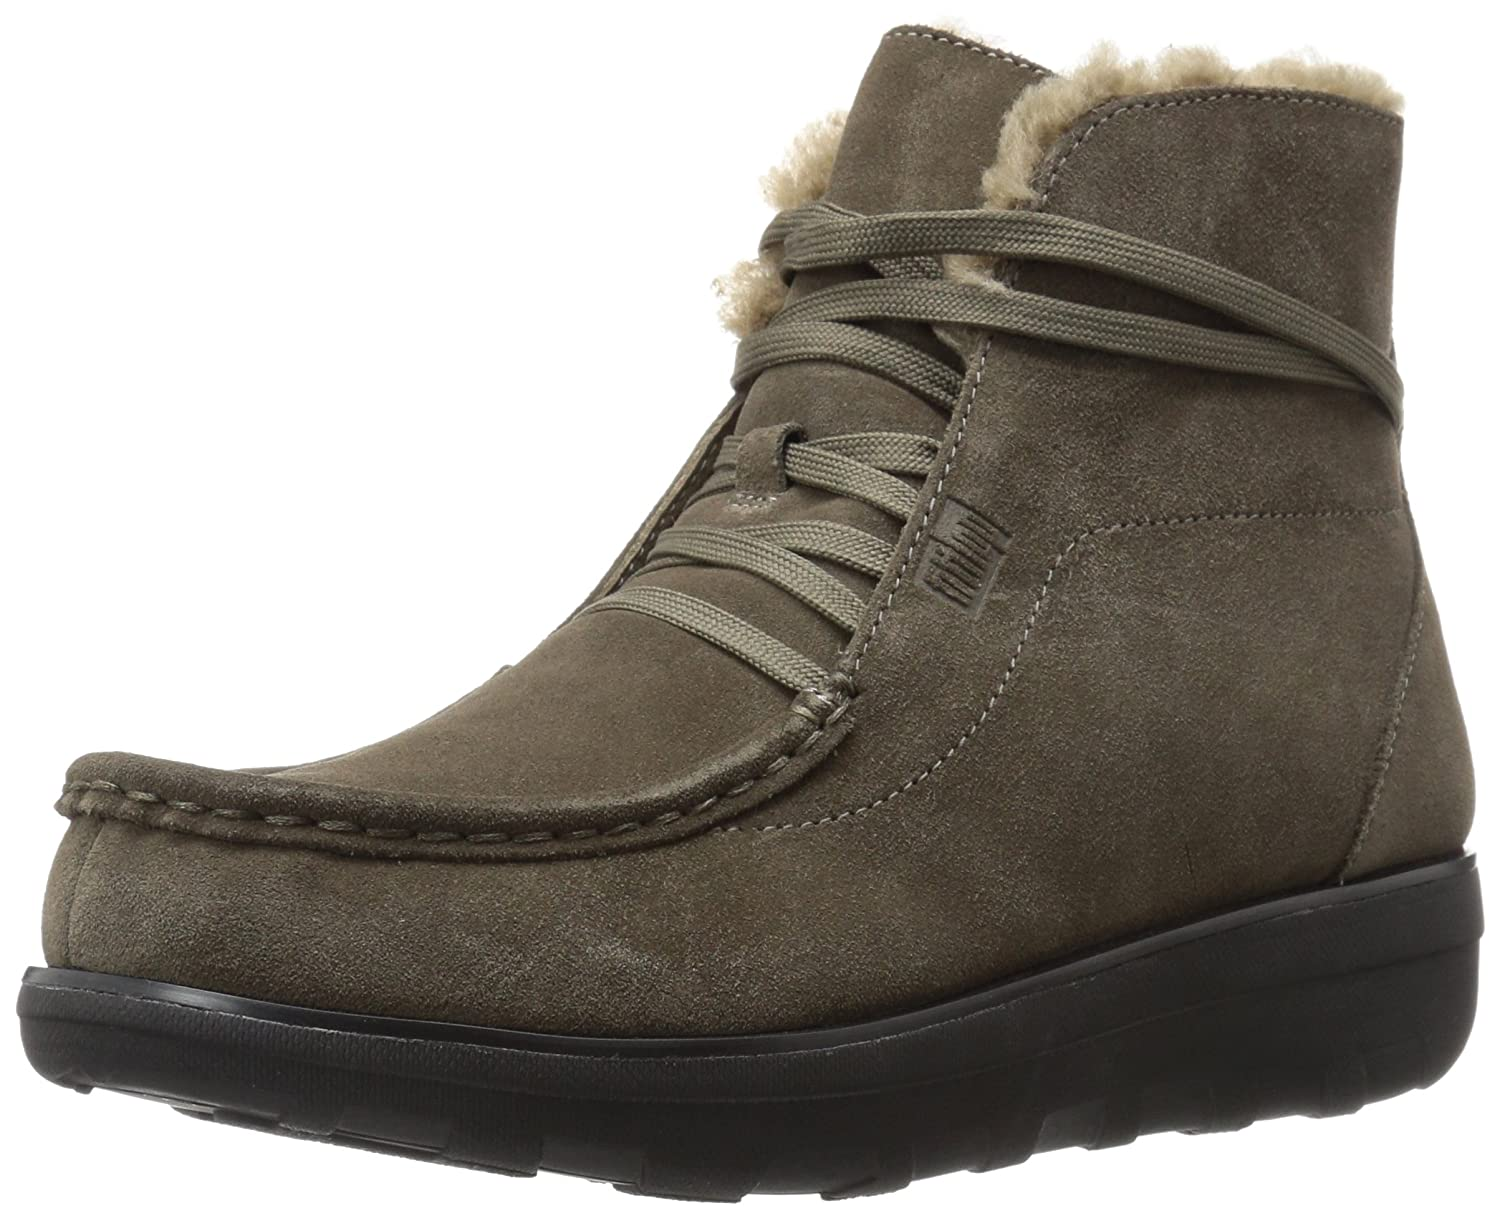 FitFlop Womens Loaff Lace-up Ankle Boot B01IC55806 7 B(M) US|Bungee Cord